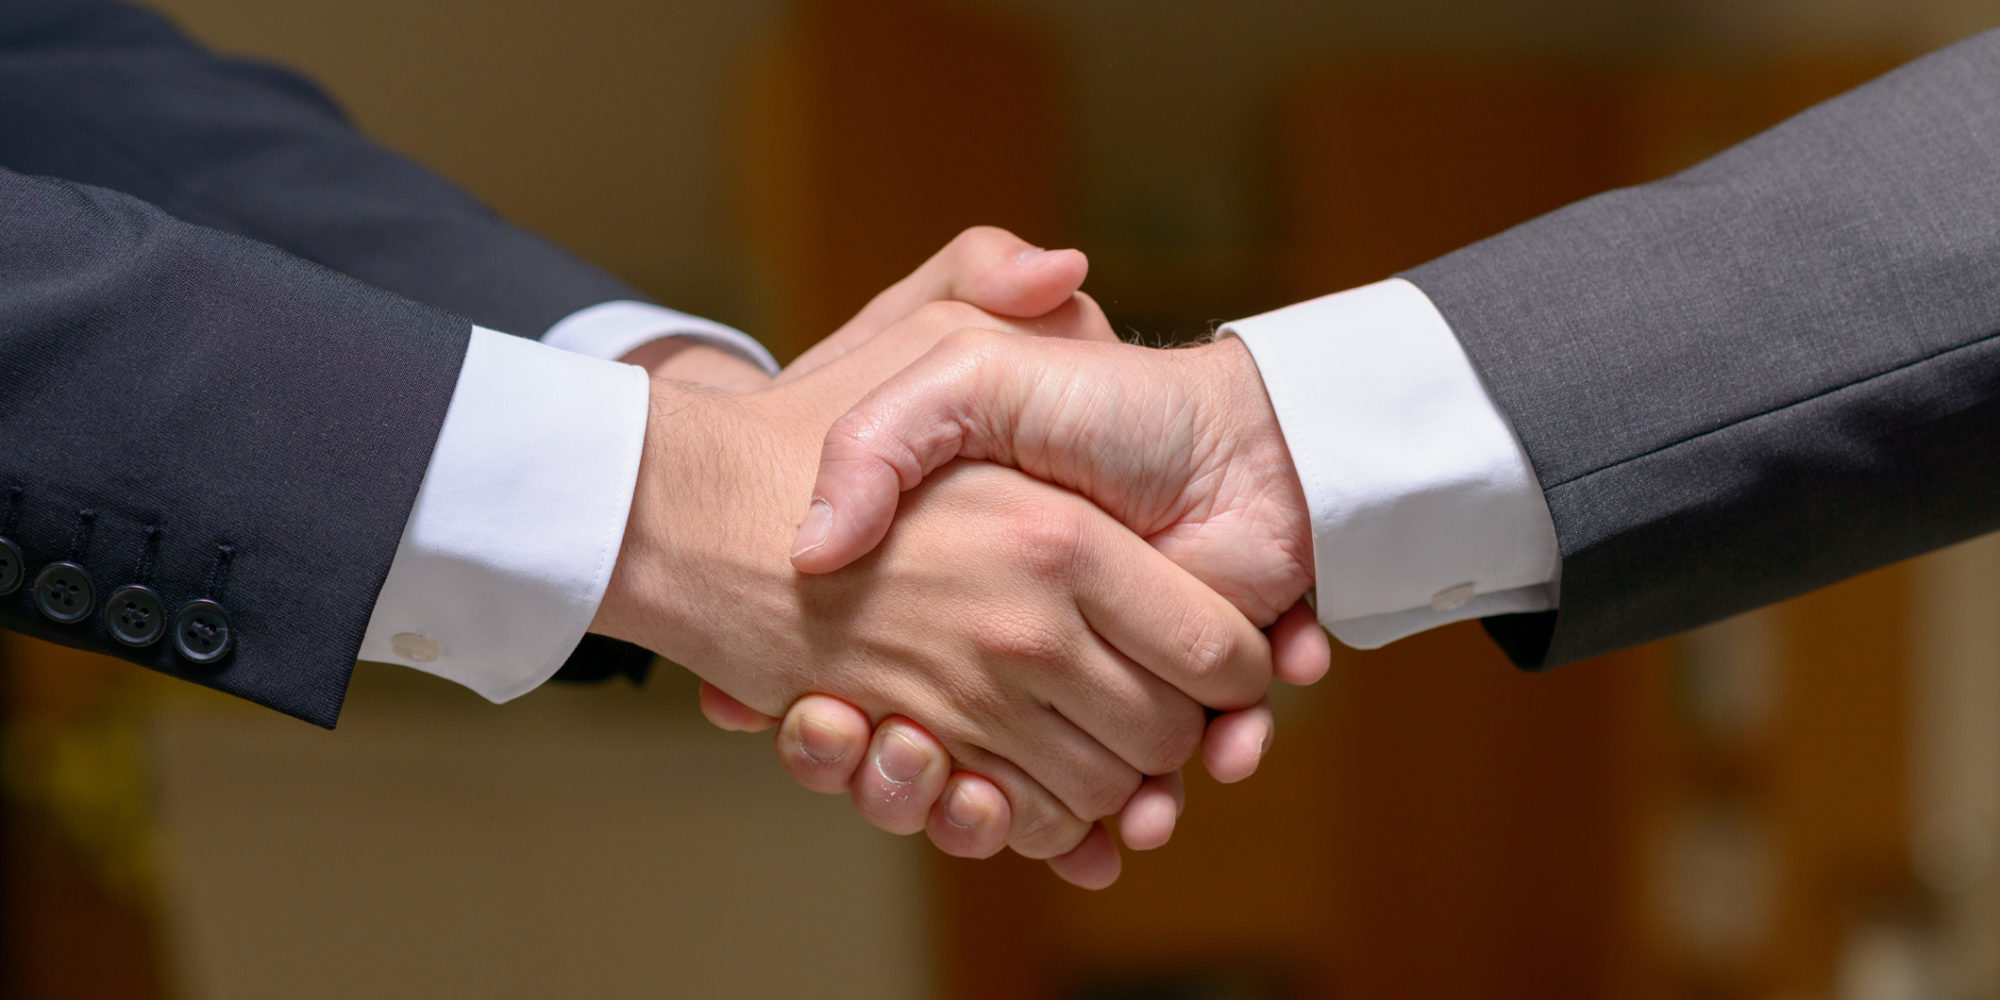 Two businessmen shaking hands outdoors with the enthusiastic younger man clasping the other hand with both hands in a close up view